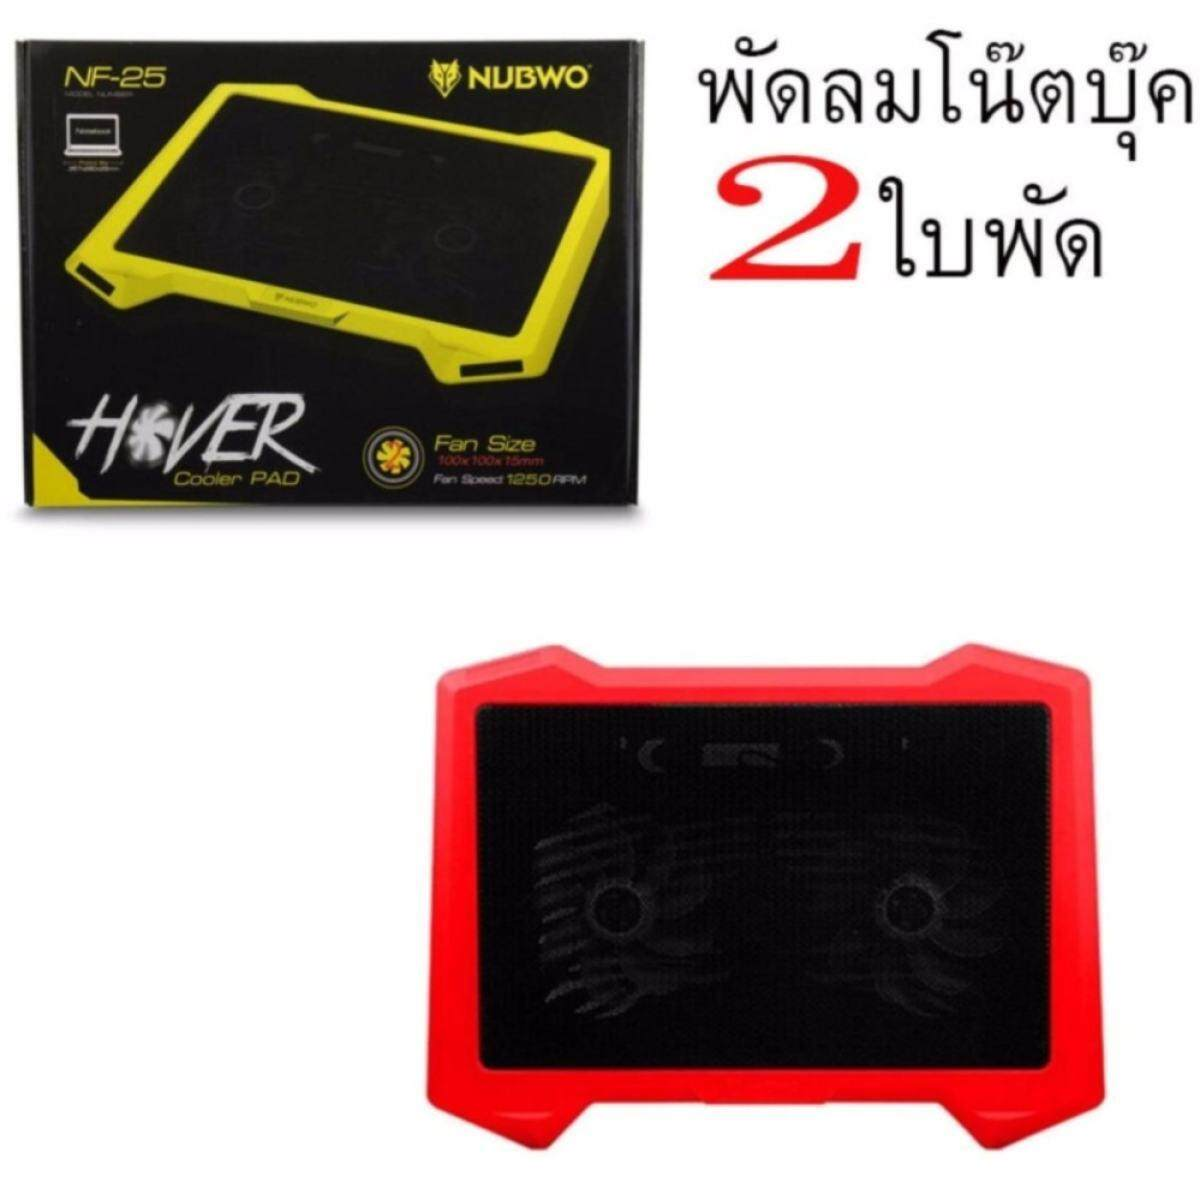 Nubwo Hover Laptop Cooler Pad Nf-25 By 117accessries.